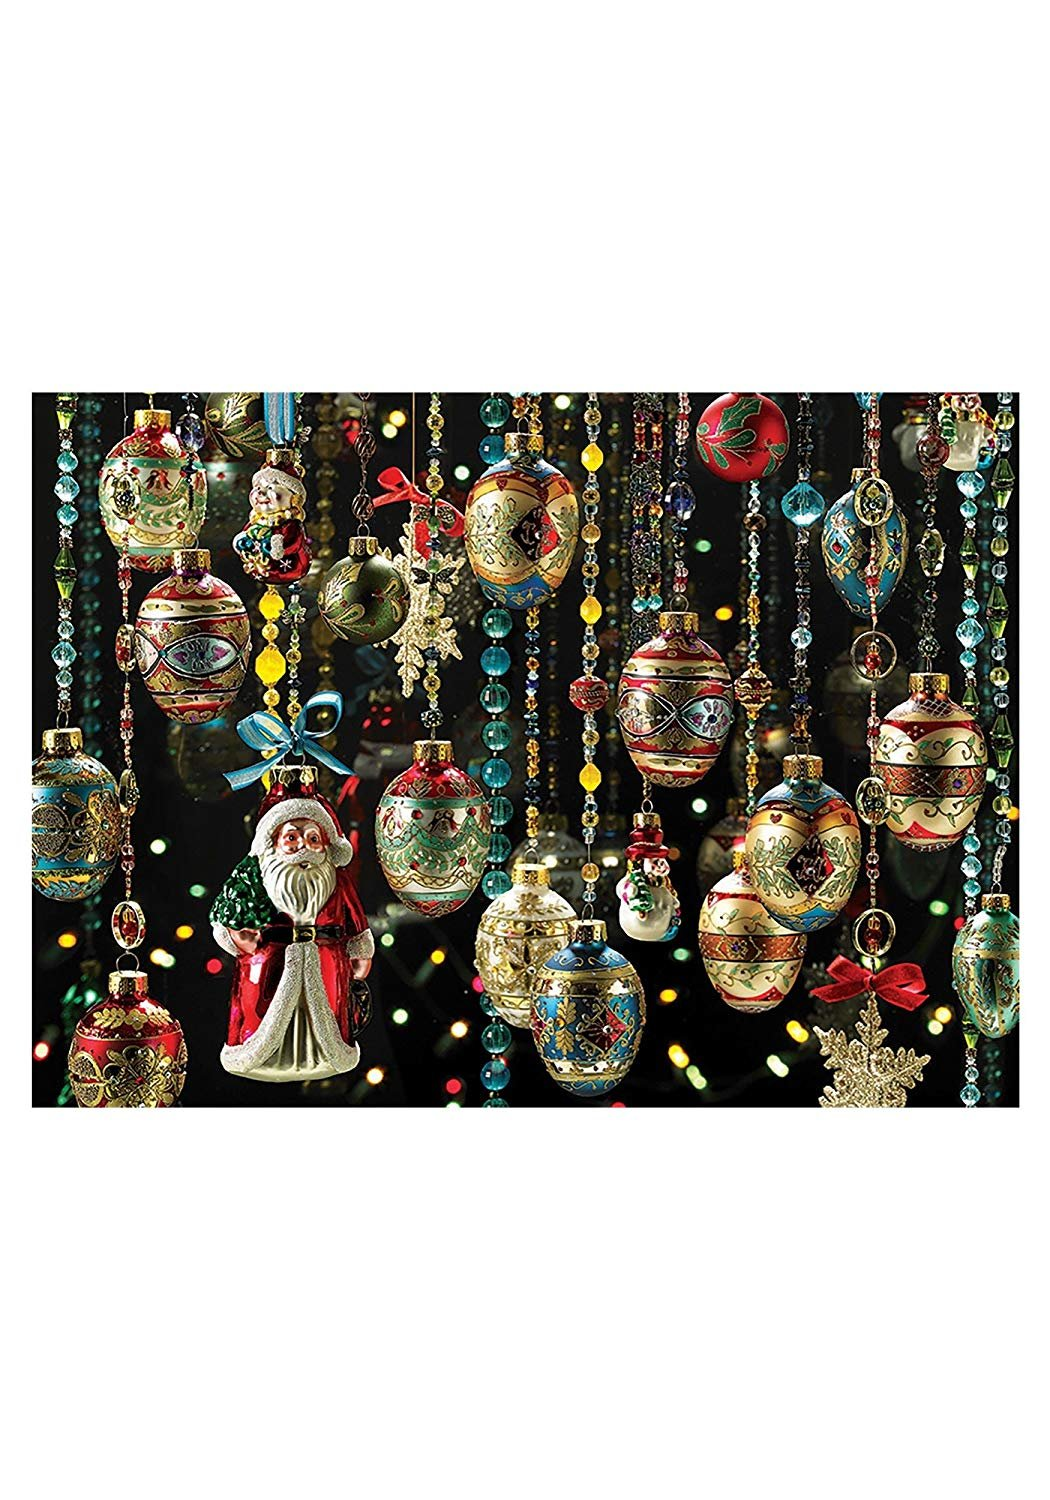 Cobble Hill 1000 pc Christmas Ornaments Jigsaw Puzzle